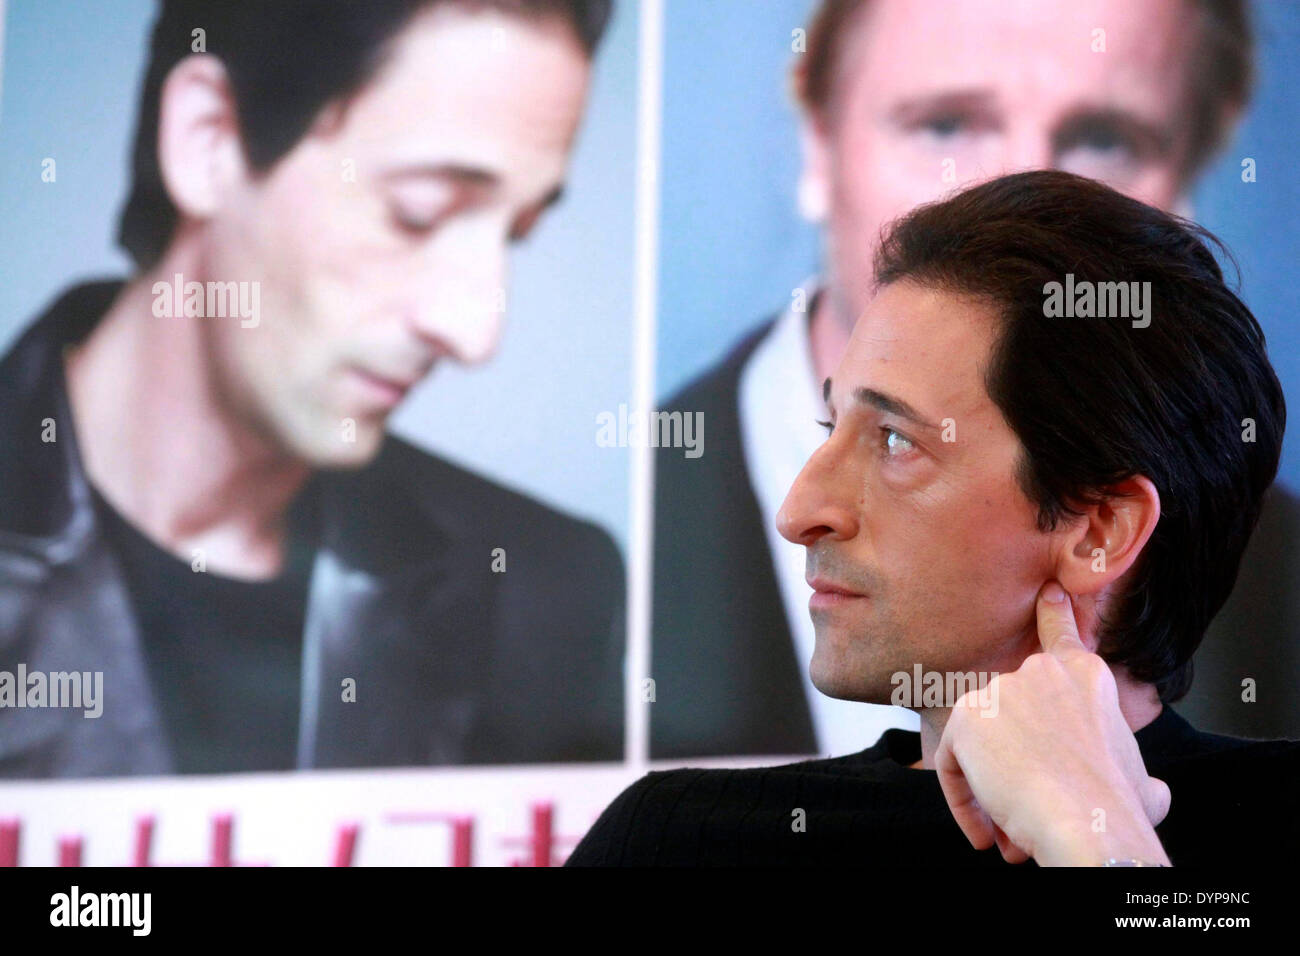 Beijing, China. 23rd Apr, 2014. Actor Adrien Brody attends a press conference for 'Third Person' at the 4th Beijing International Film Festival in Beijing, capital of China, April 23, 2014. © Zhang Yu/Xinhua/Alamy Live News - Stock Image